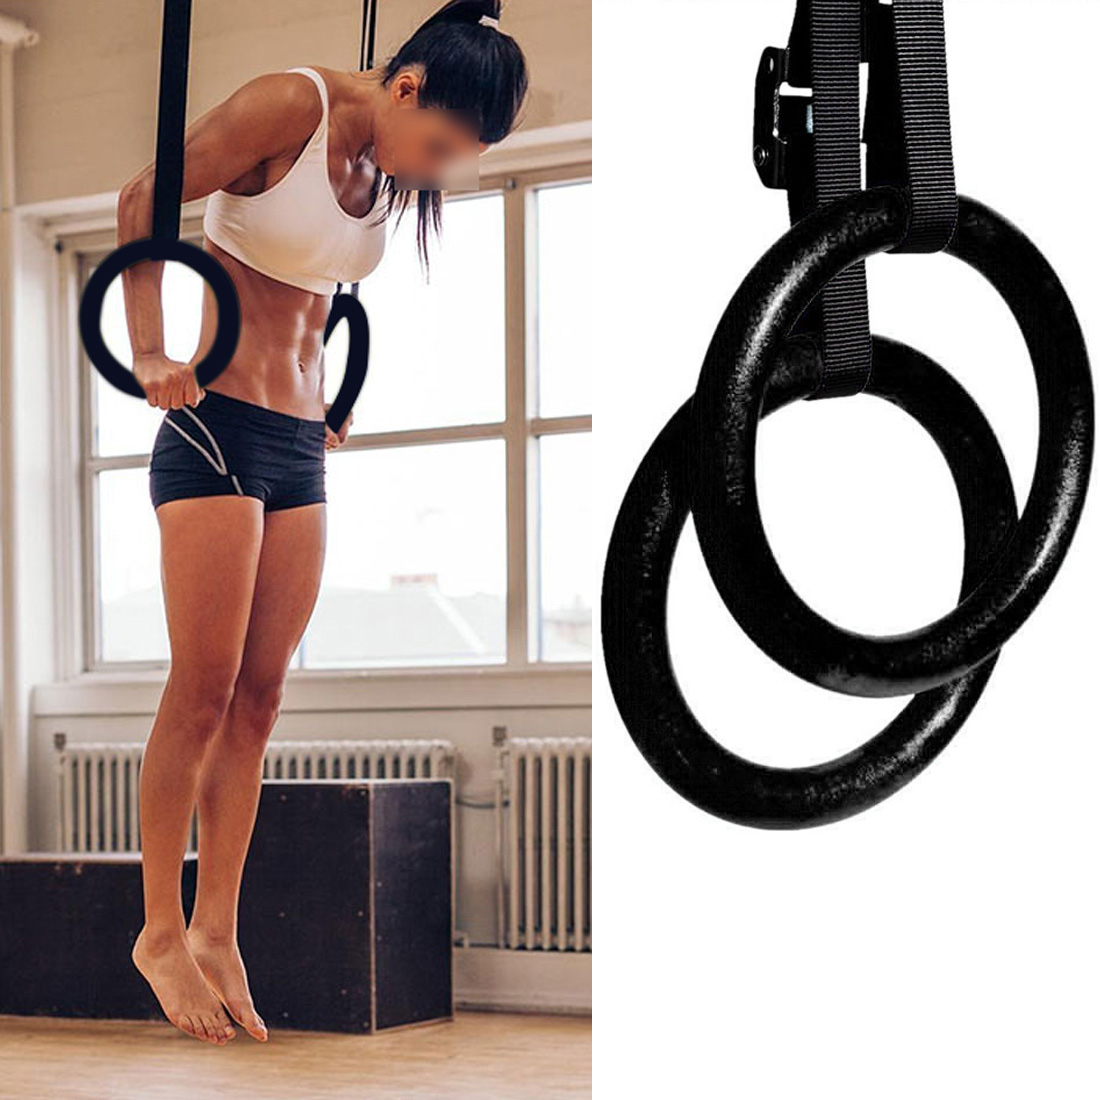 Hot Professional Adjustable Home Gymnastic Rings and Straps Fitness For Upper Body Strength Training Bodyweight Muscle Exercise wooden 28mm exercise hanging fitness gymnastic rings adjustable gym crossfit muscle strength training pull ups muscle ups